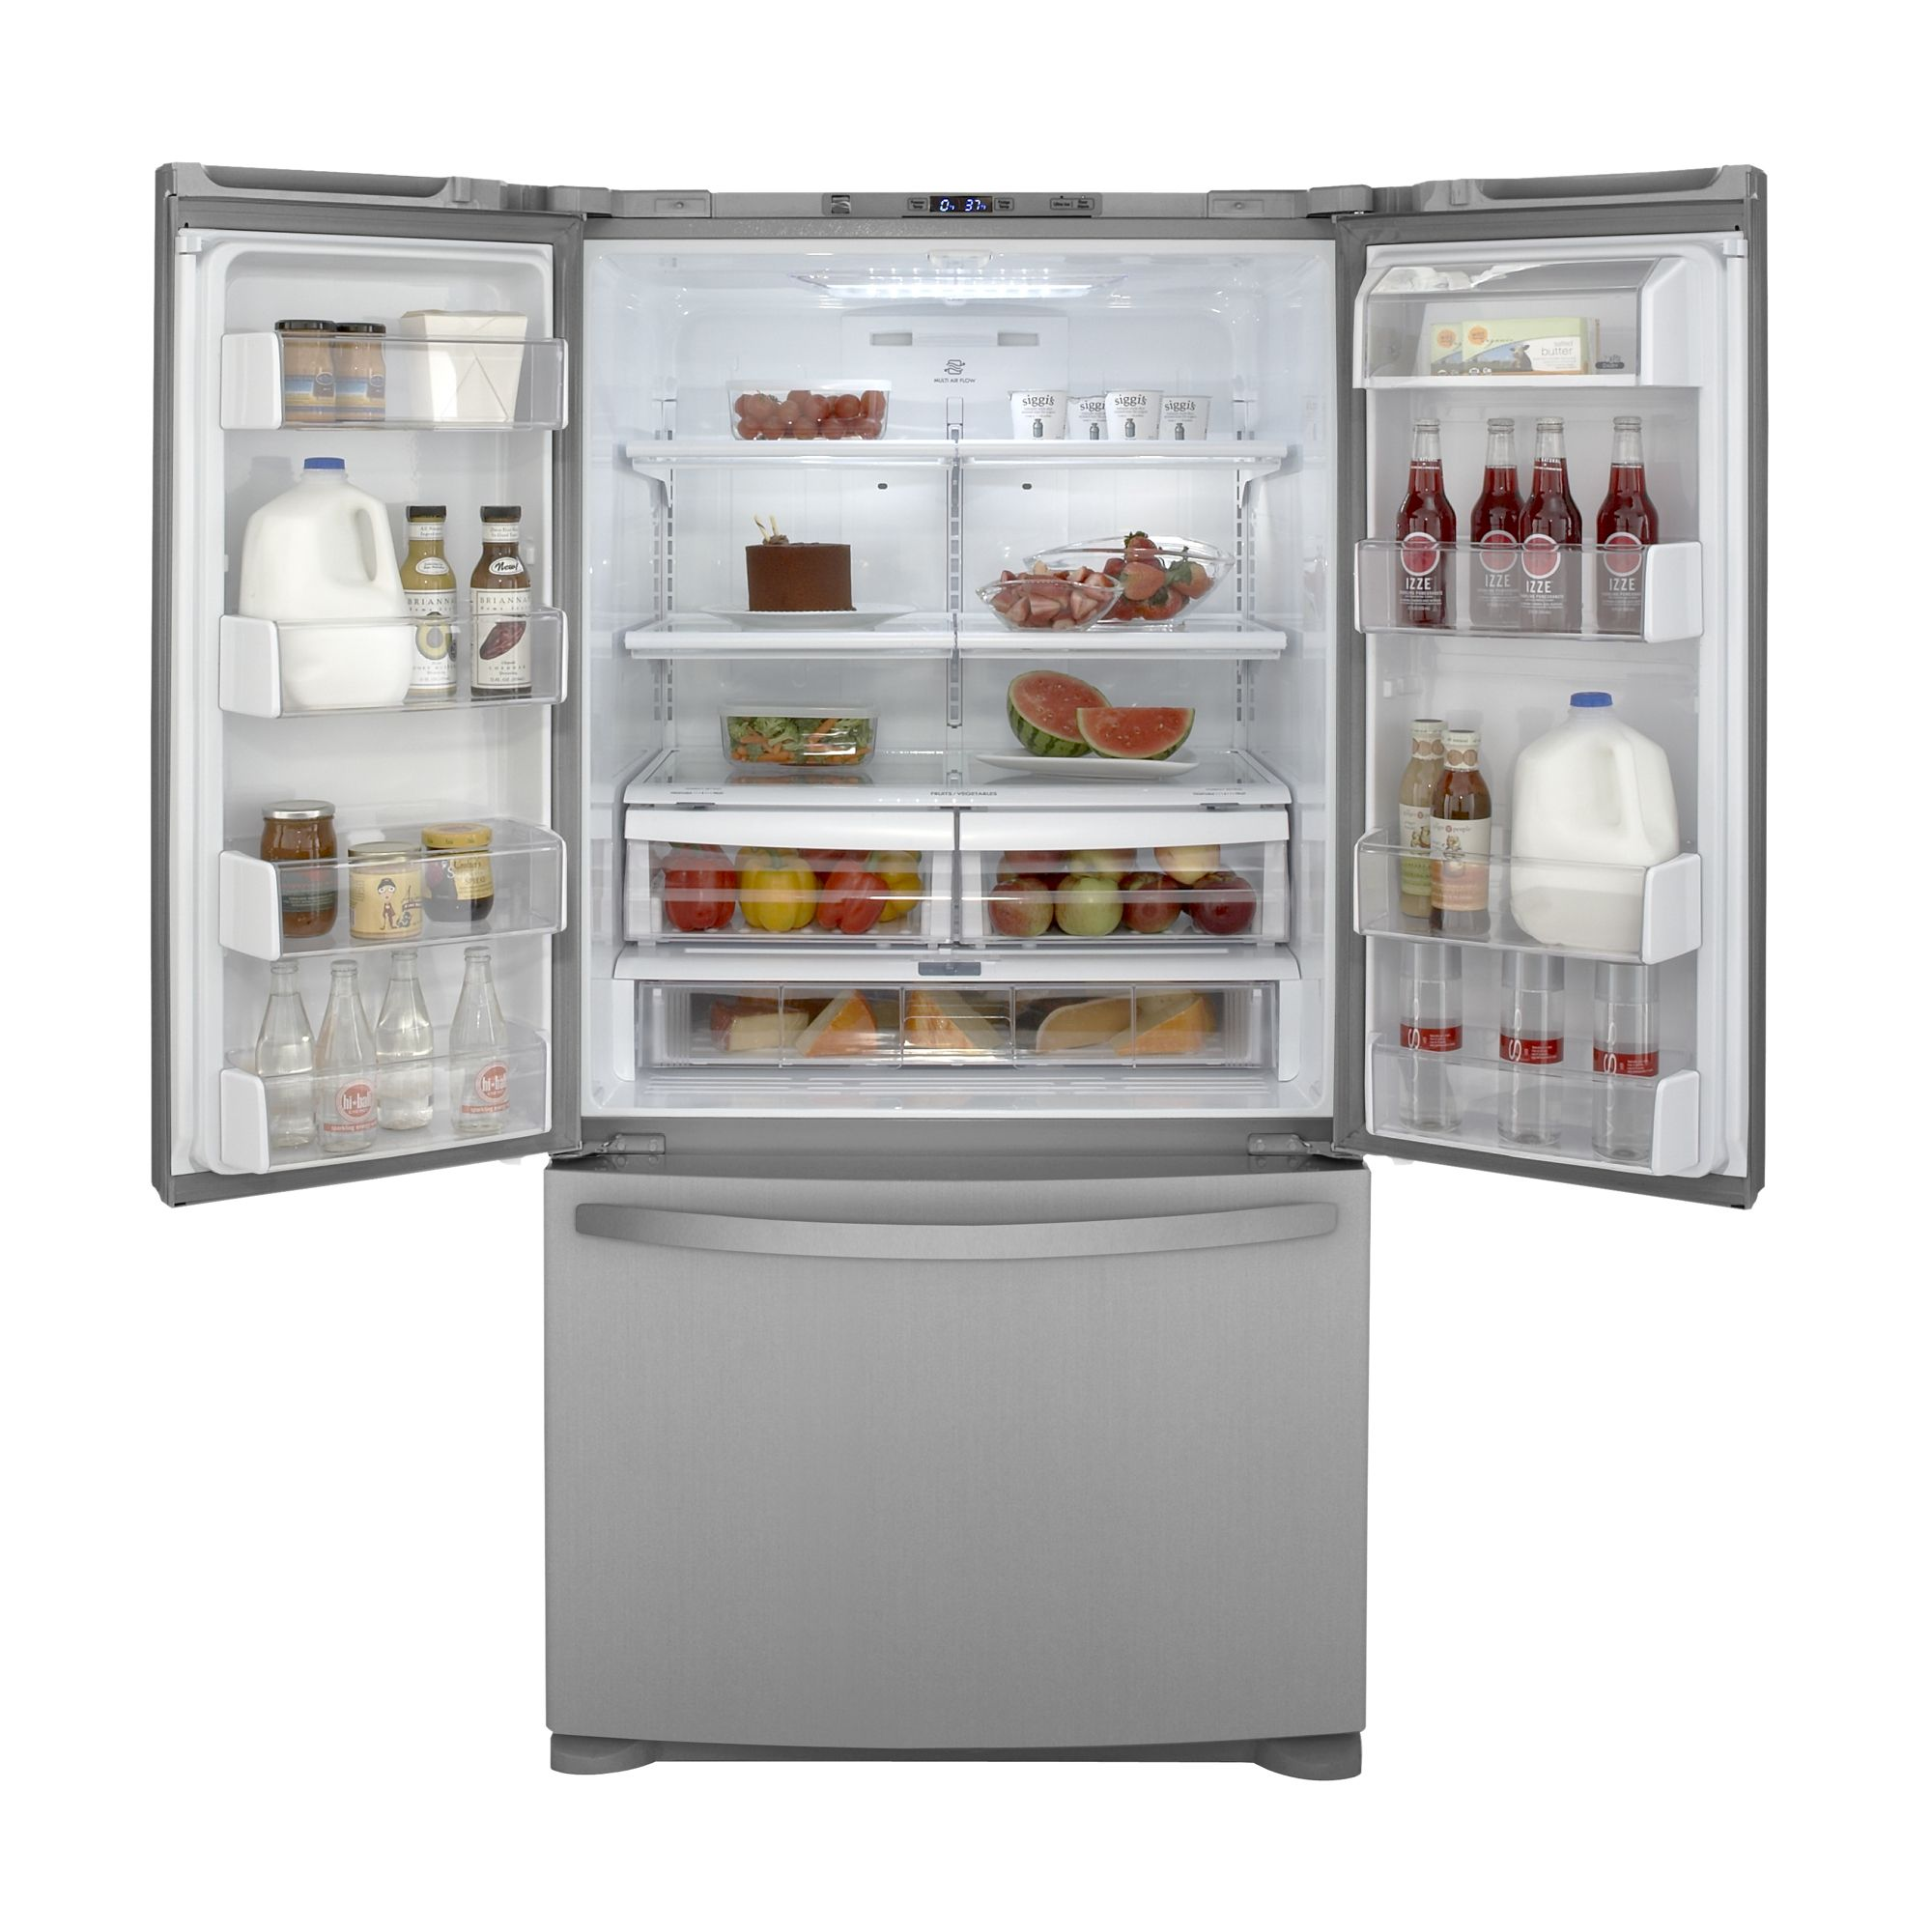 25.0 cu. ft. French Door Bottom-Freezer Refrigerator - Stainless Steel                                                           at mygofer.com